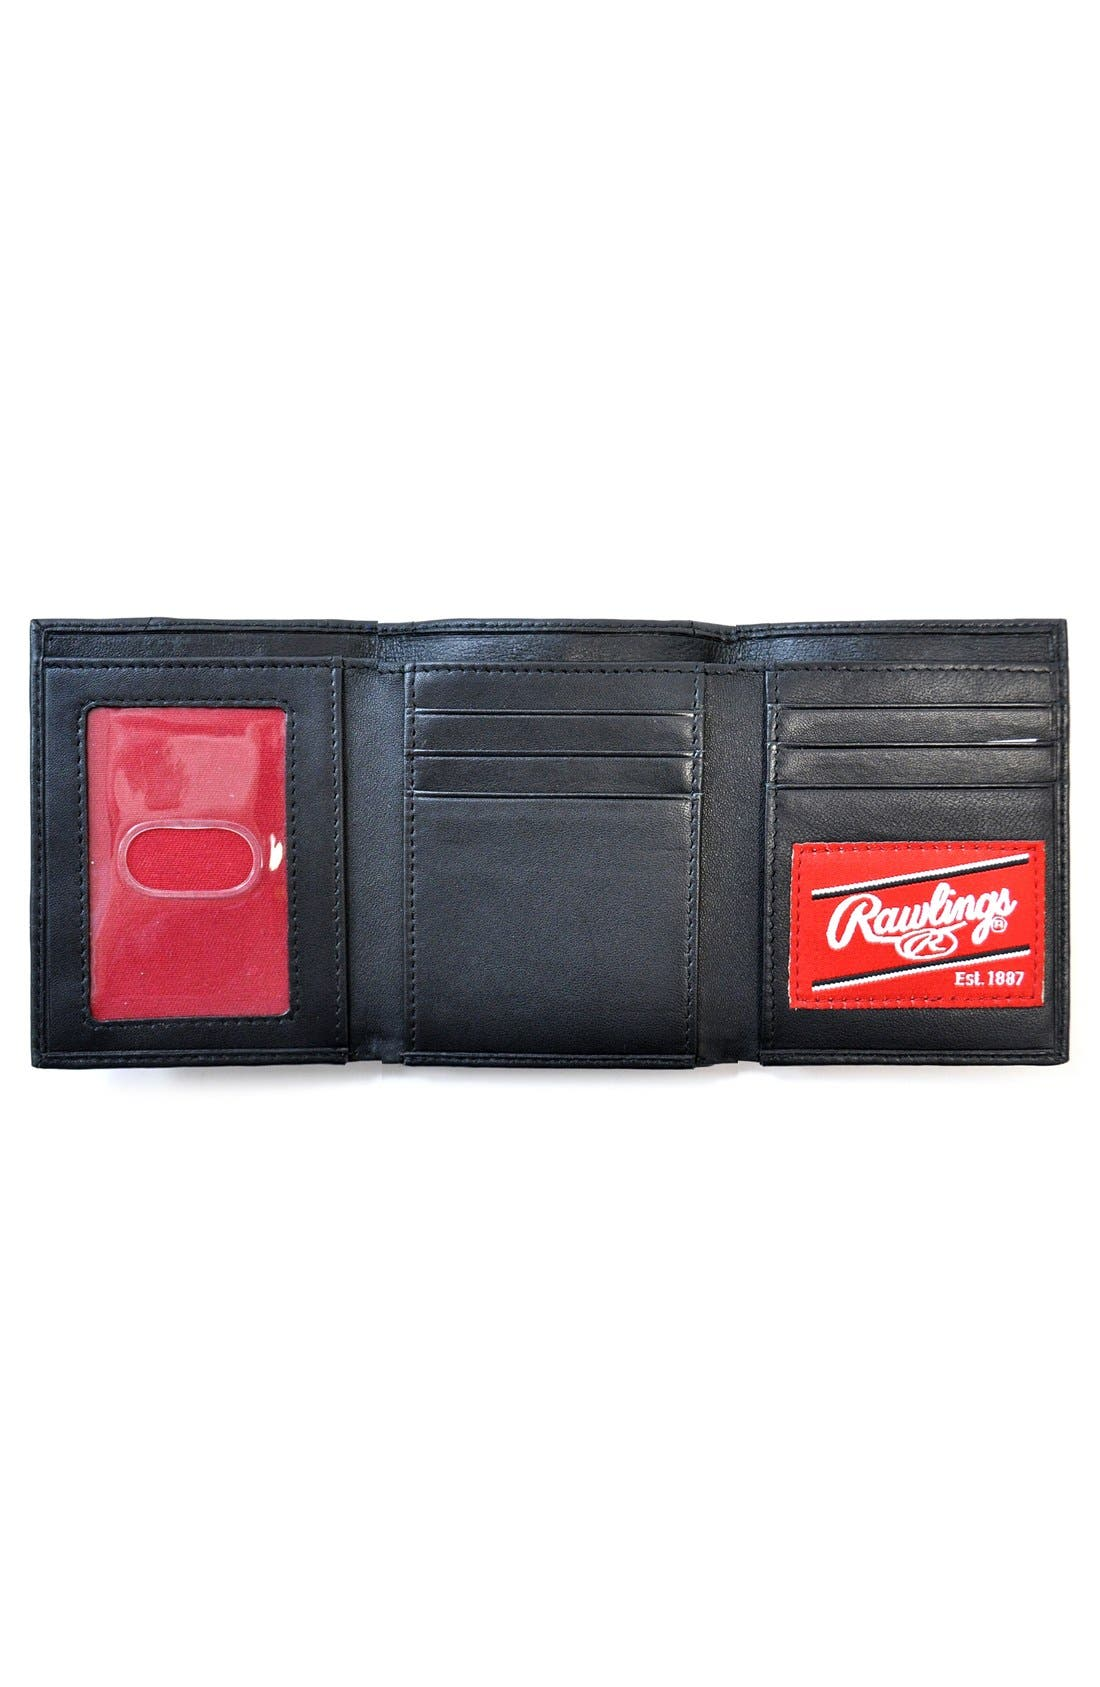 Baseball Stitch Leather Trifold Wallet,                             Alternate thumbnail 6, color,                             001